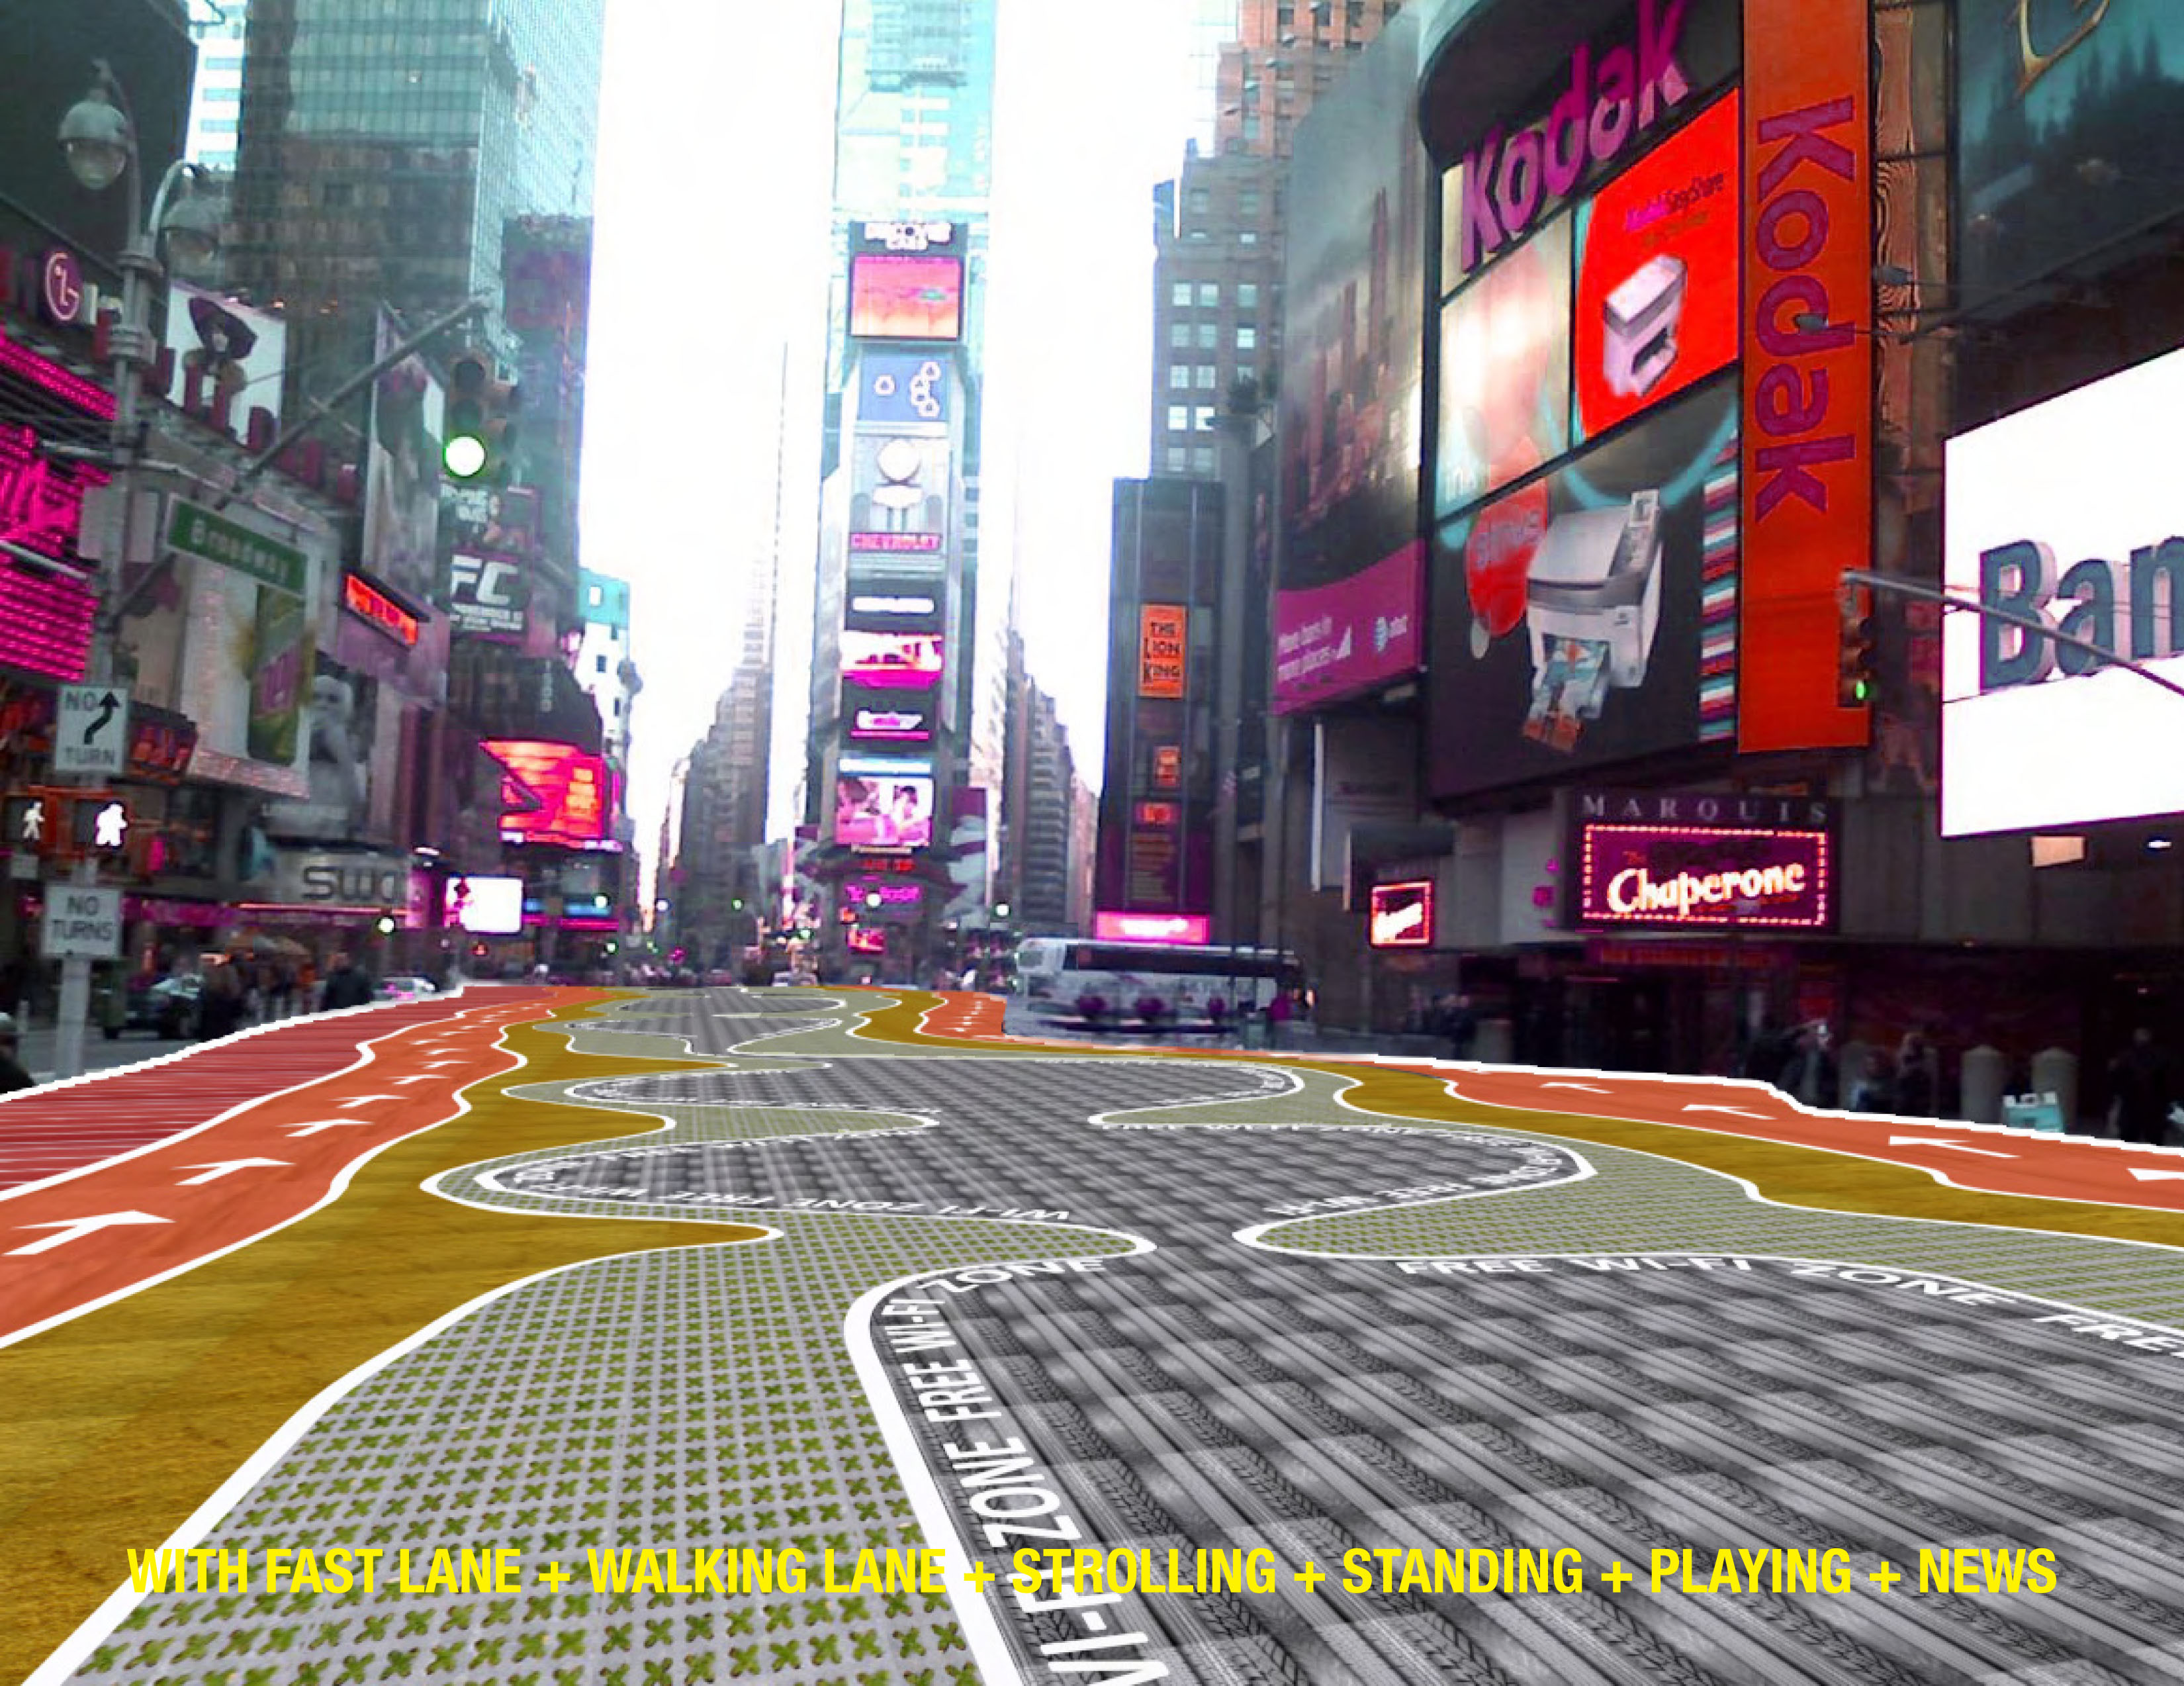 Time_Square_10